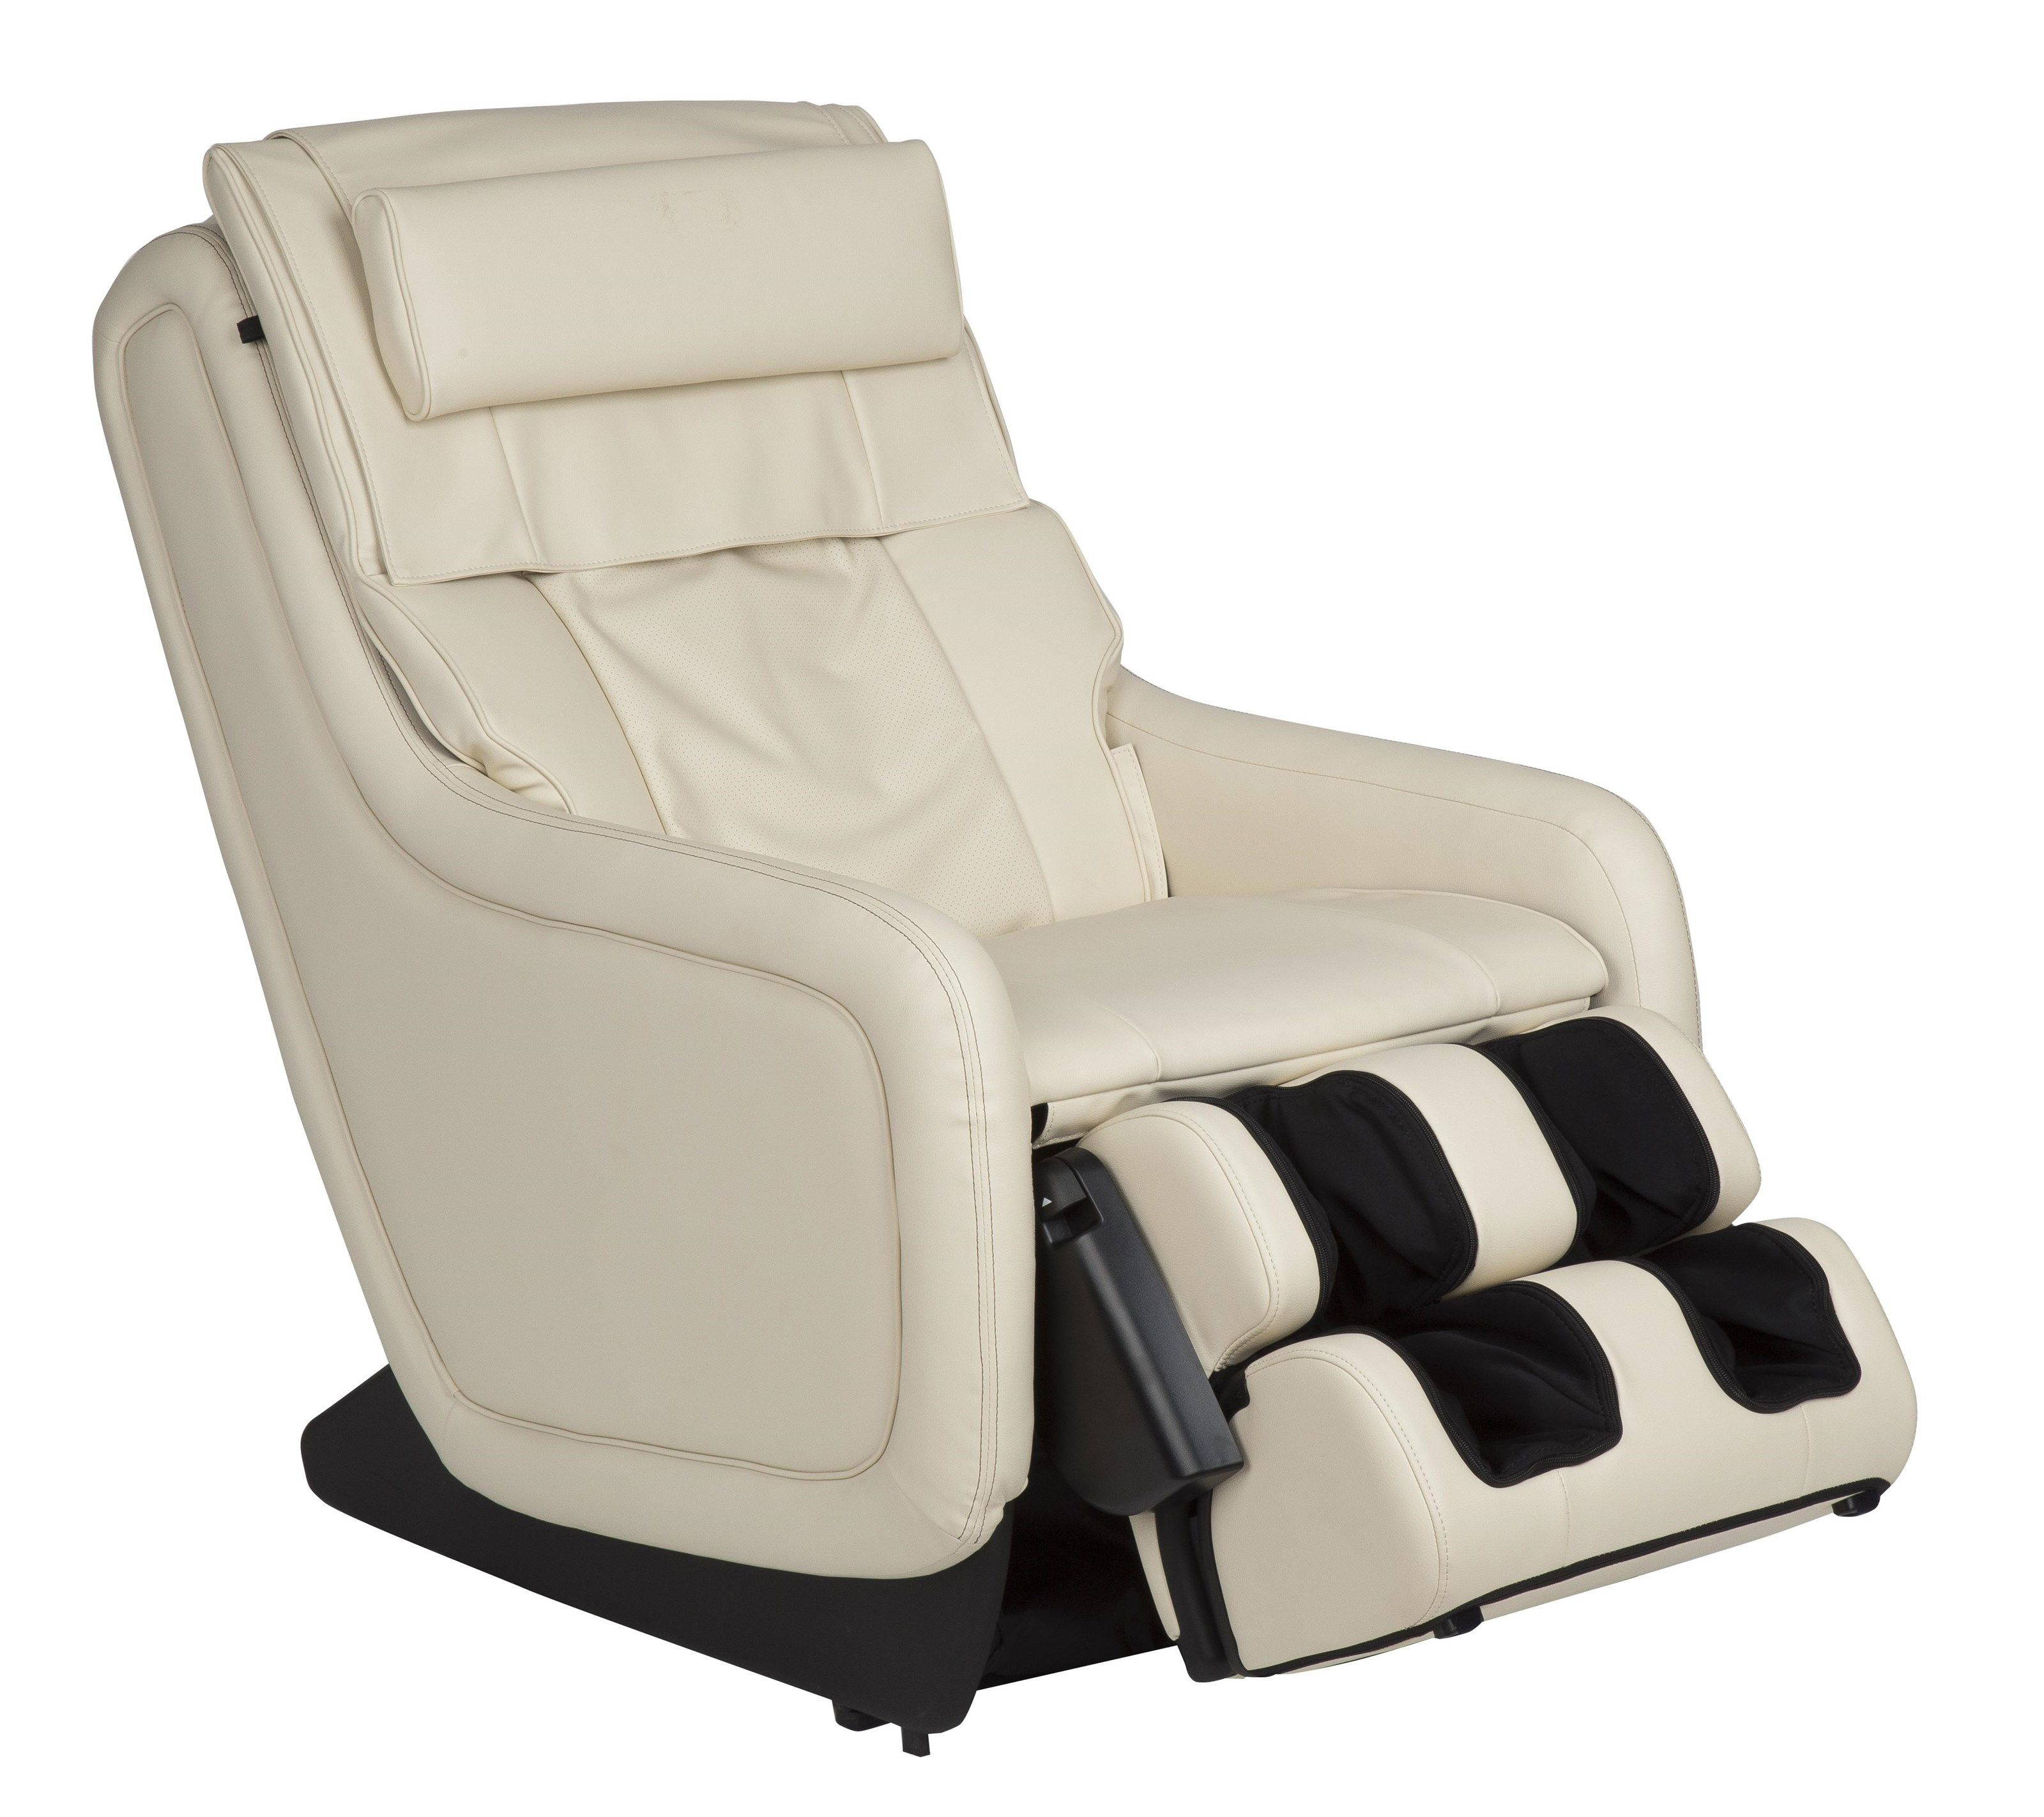 Immersion Seating Massage Chair by Human Touch Massage